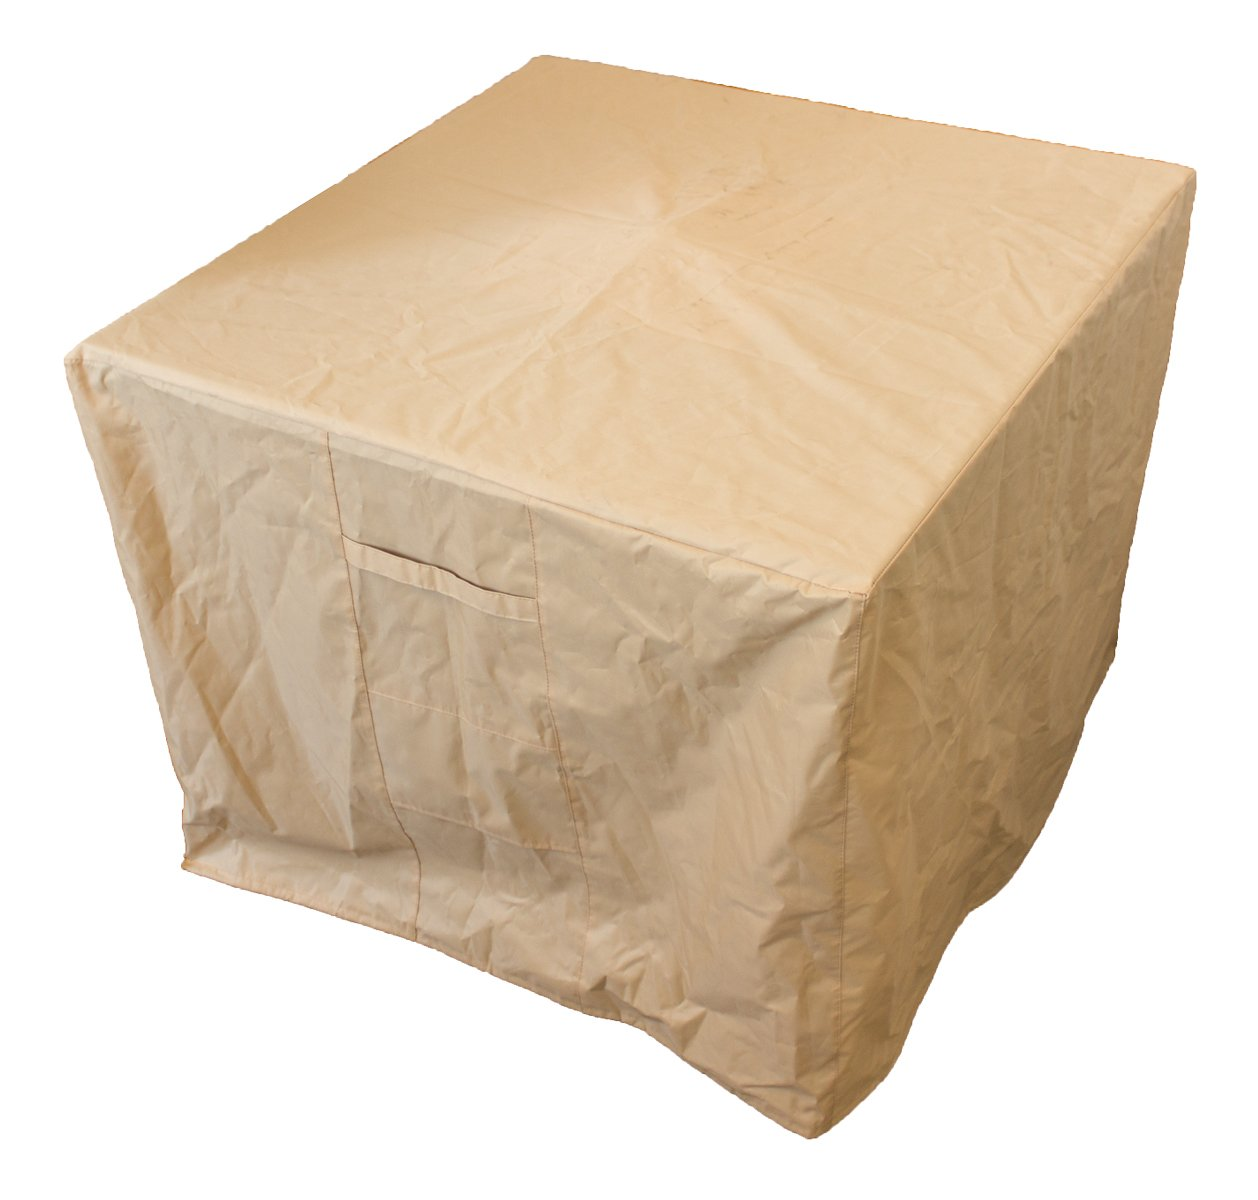 AZ Patio Heaters - CA HVD-PRPC-CVR Cover for Conventional Square Fire Pit, Tan product image